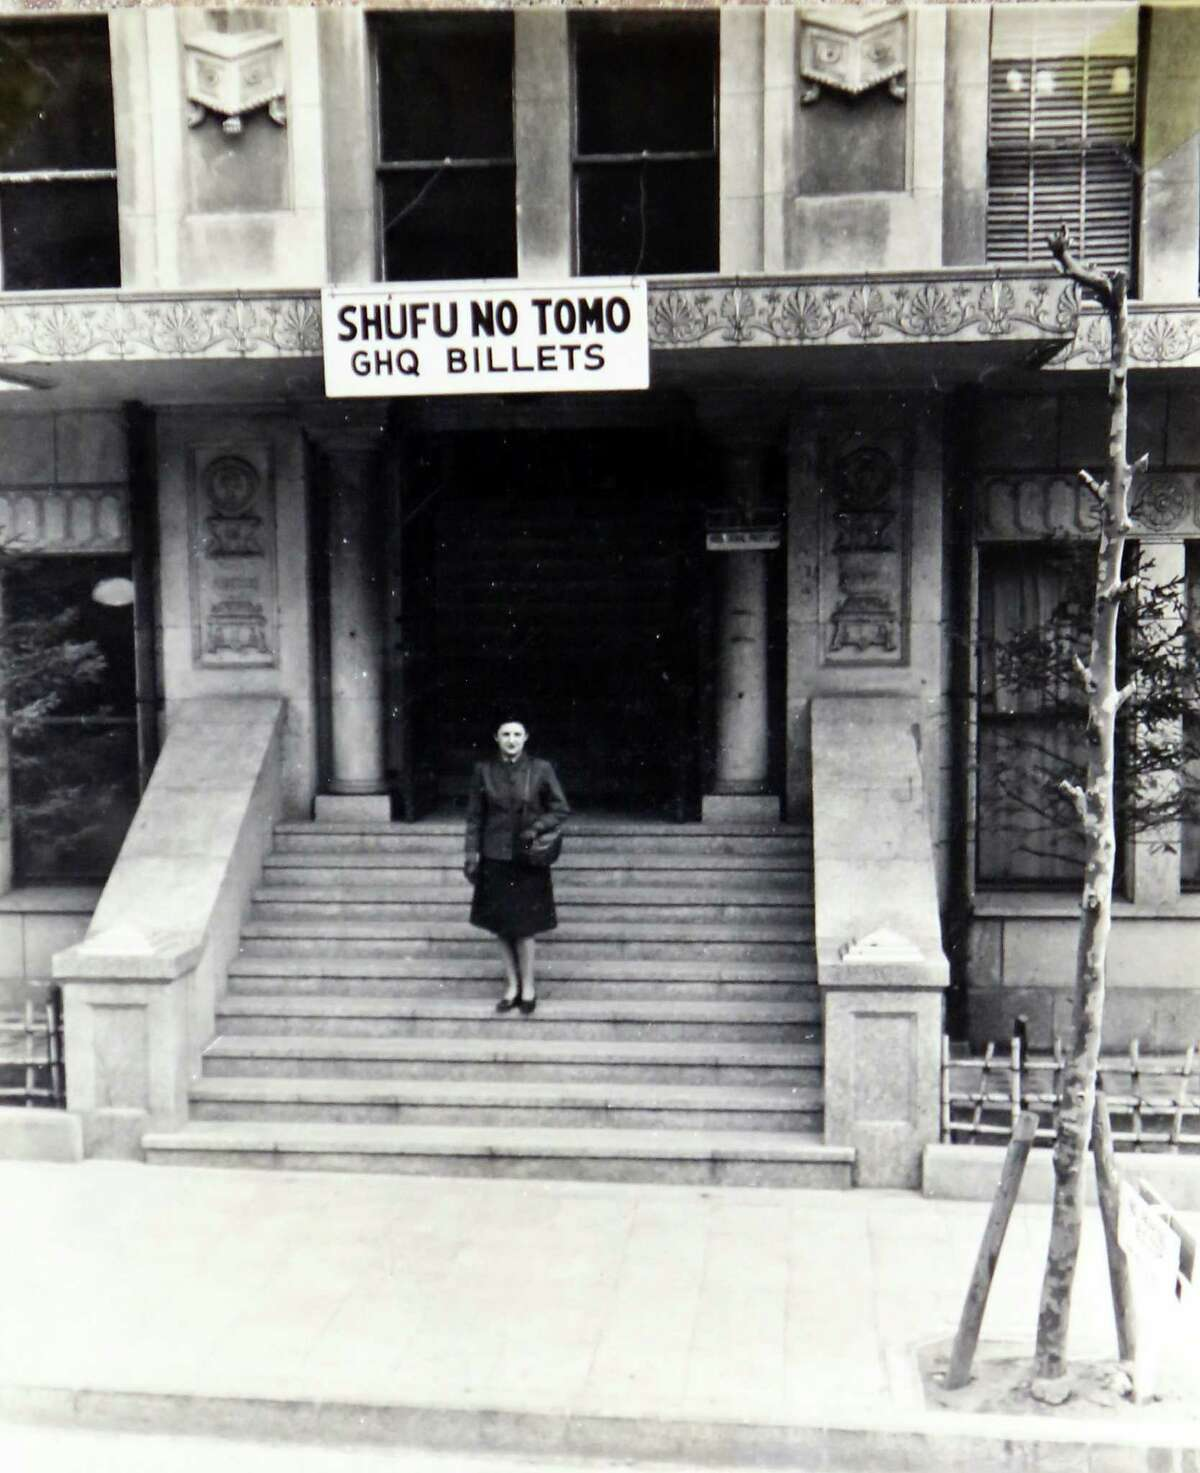 Lucy Coffey stands on the steps of her residence while she lived in Okinawa. Coffey is the nationØs oldest woman veteran, serving in the procurement office of the WomenØs Army Auxiliary Corps during World War II. Today, she is 108 years old and failing. A group in Austin wants to send her to Washington for an honor flight and possibly meet with Vice President Biden. Coffey enlisted in the Women's Army Auxiliary Corps in 1943 and landed in Japan, where she served in the procurement office and worked for 10 years after the war ended. She worked in the procurement office at Kelly from 1958 until her retirement in 1971, and is only a few days younger than AmericaØs oldest male veteran, Richard Overton.